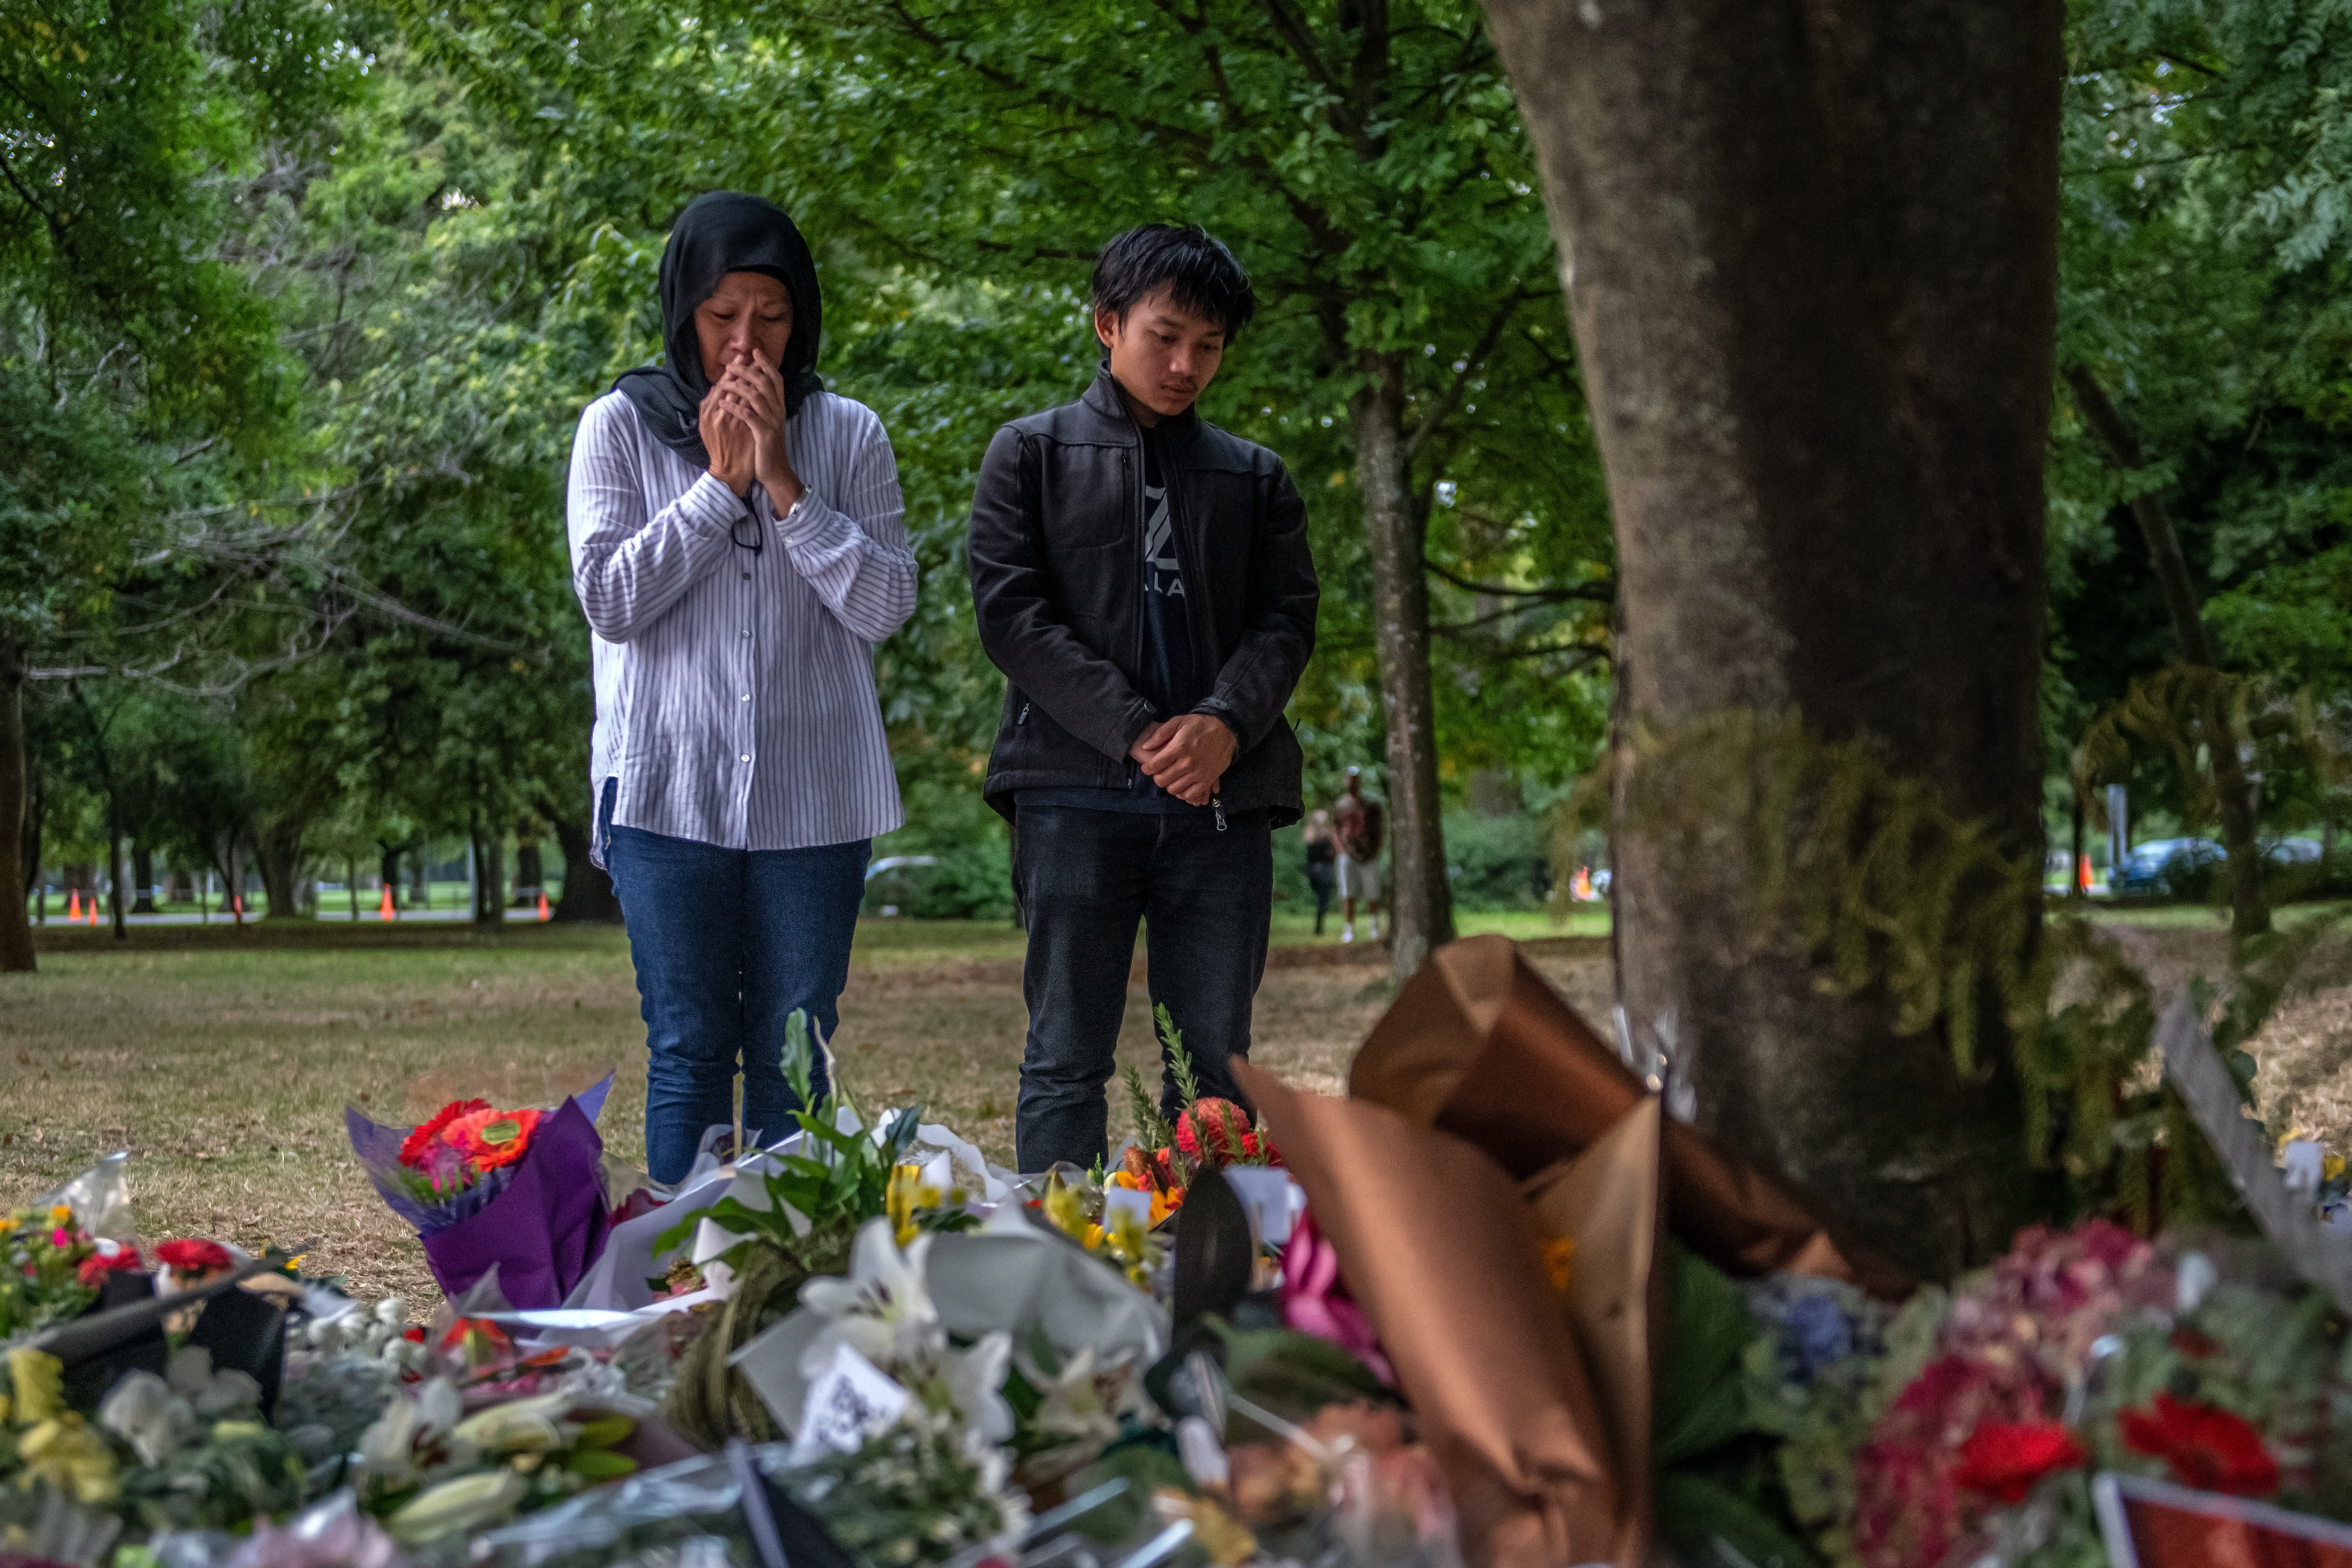 Two people stand at a memorial of piled bouquets of flowers in honor of the shooting victims in mosques in Christchurch, New Zealand.